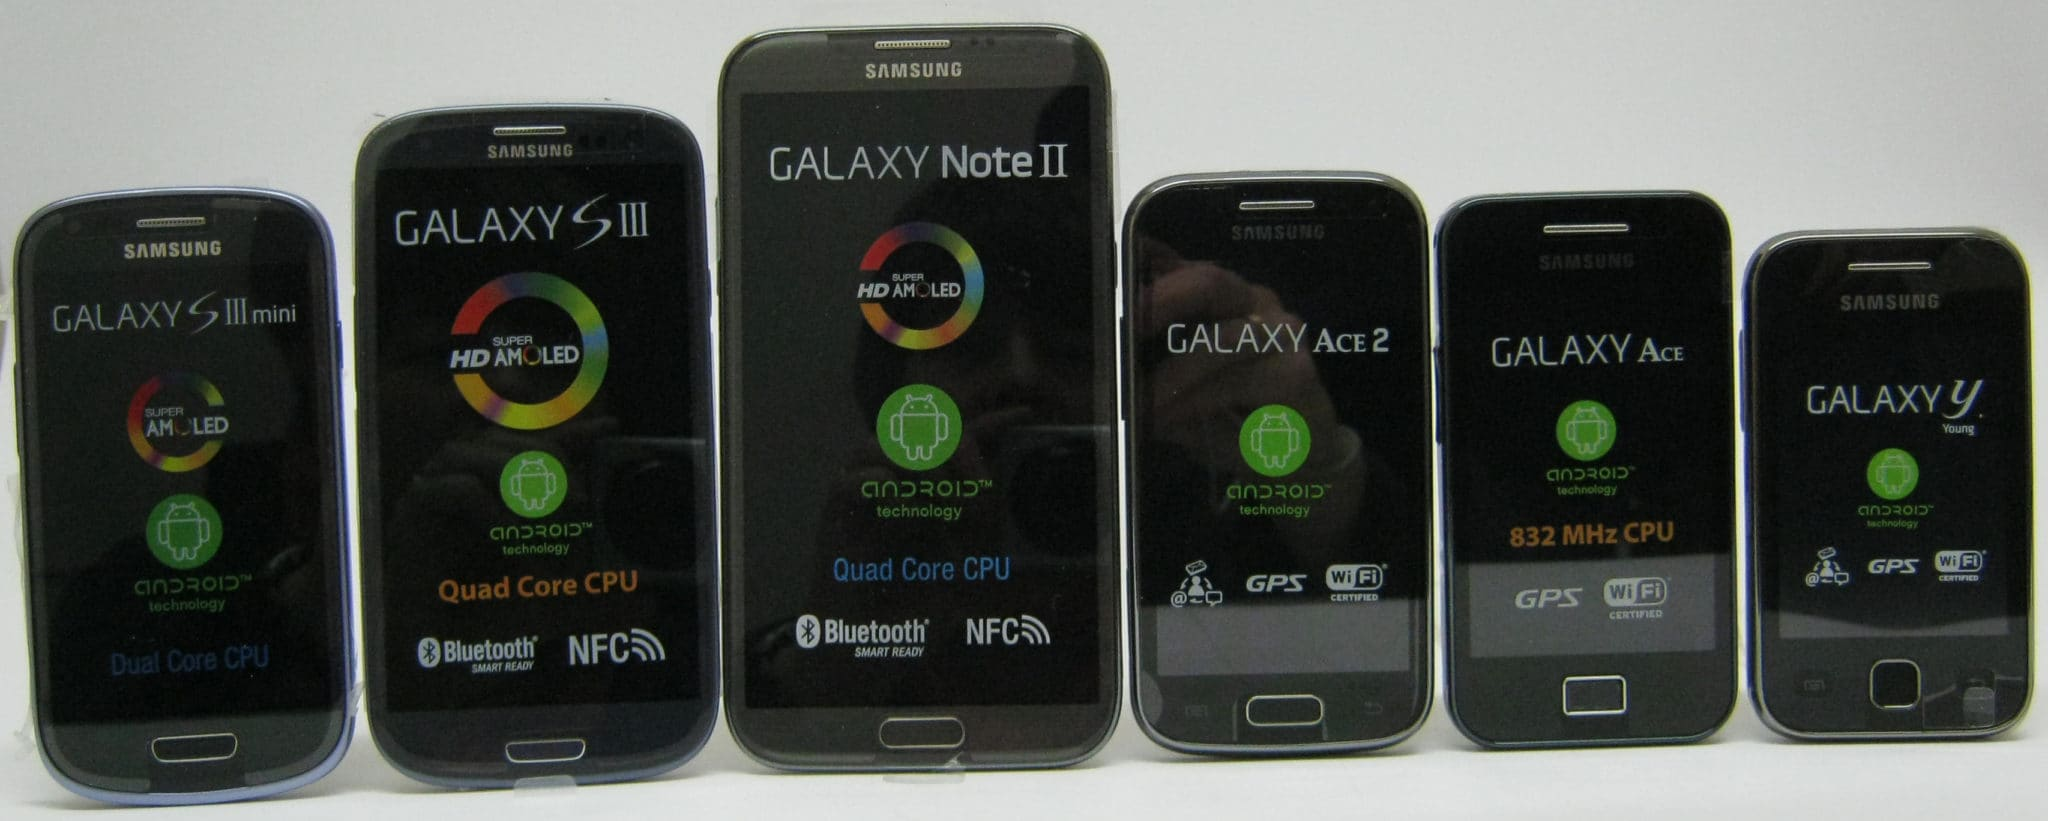 The Samsung Galaxy Family are fast becoming our best selling smart